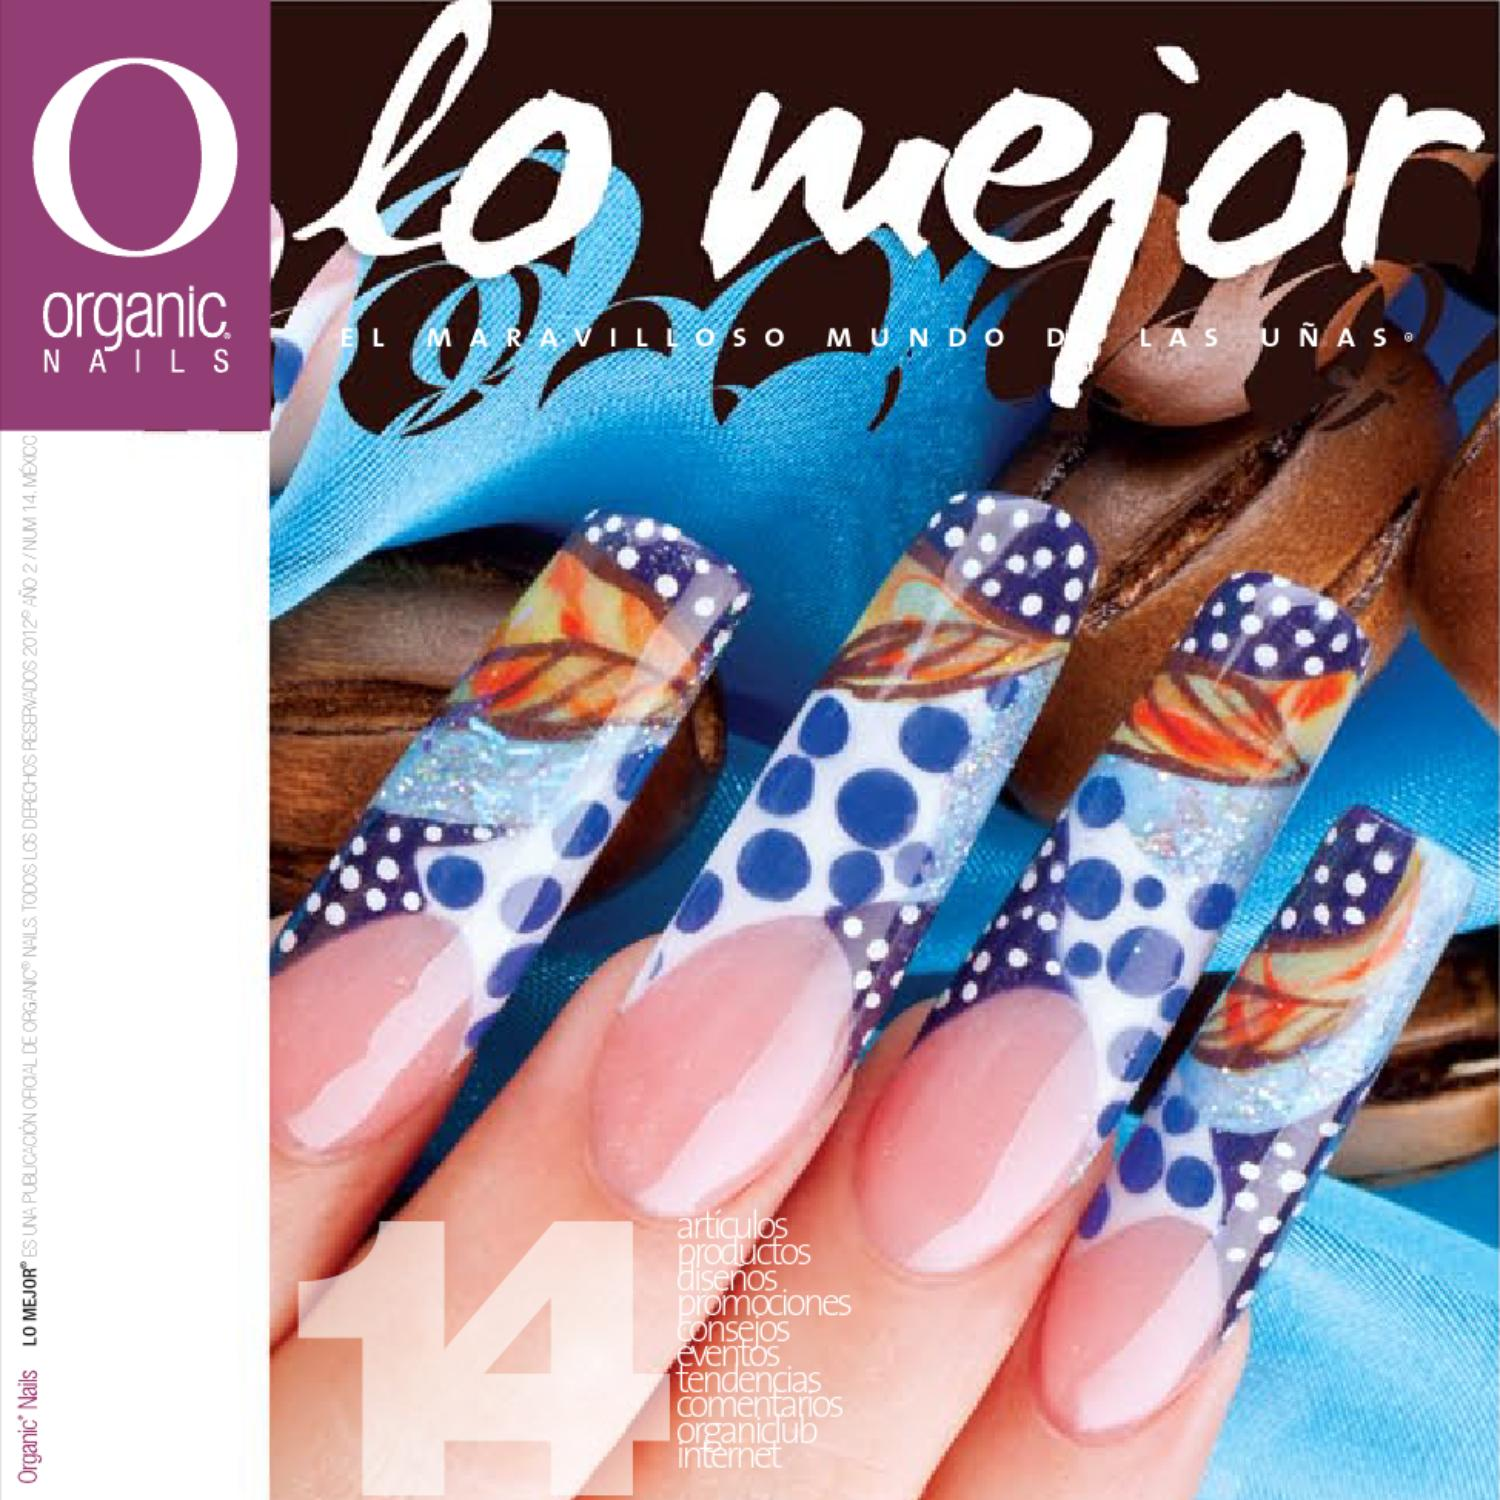 Lo Mejor 14 / Organic® Nails by Organic Nails® - issuu